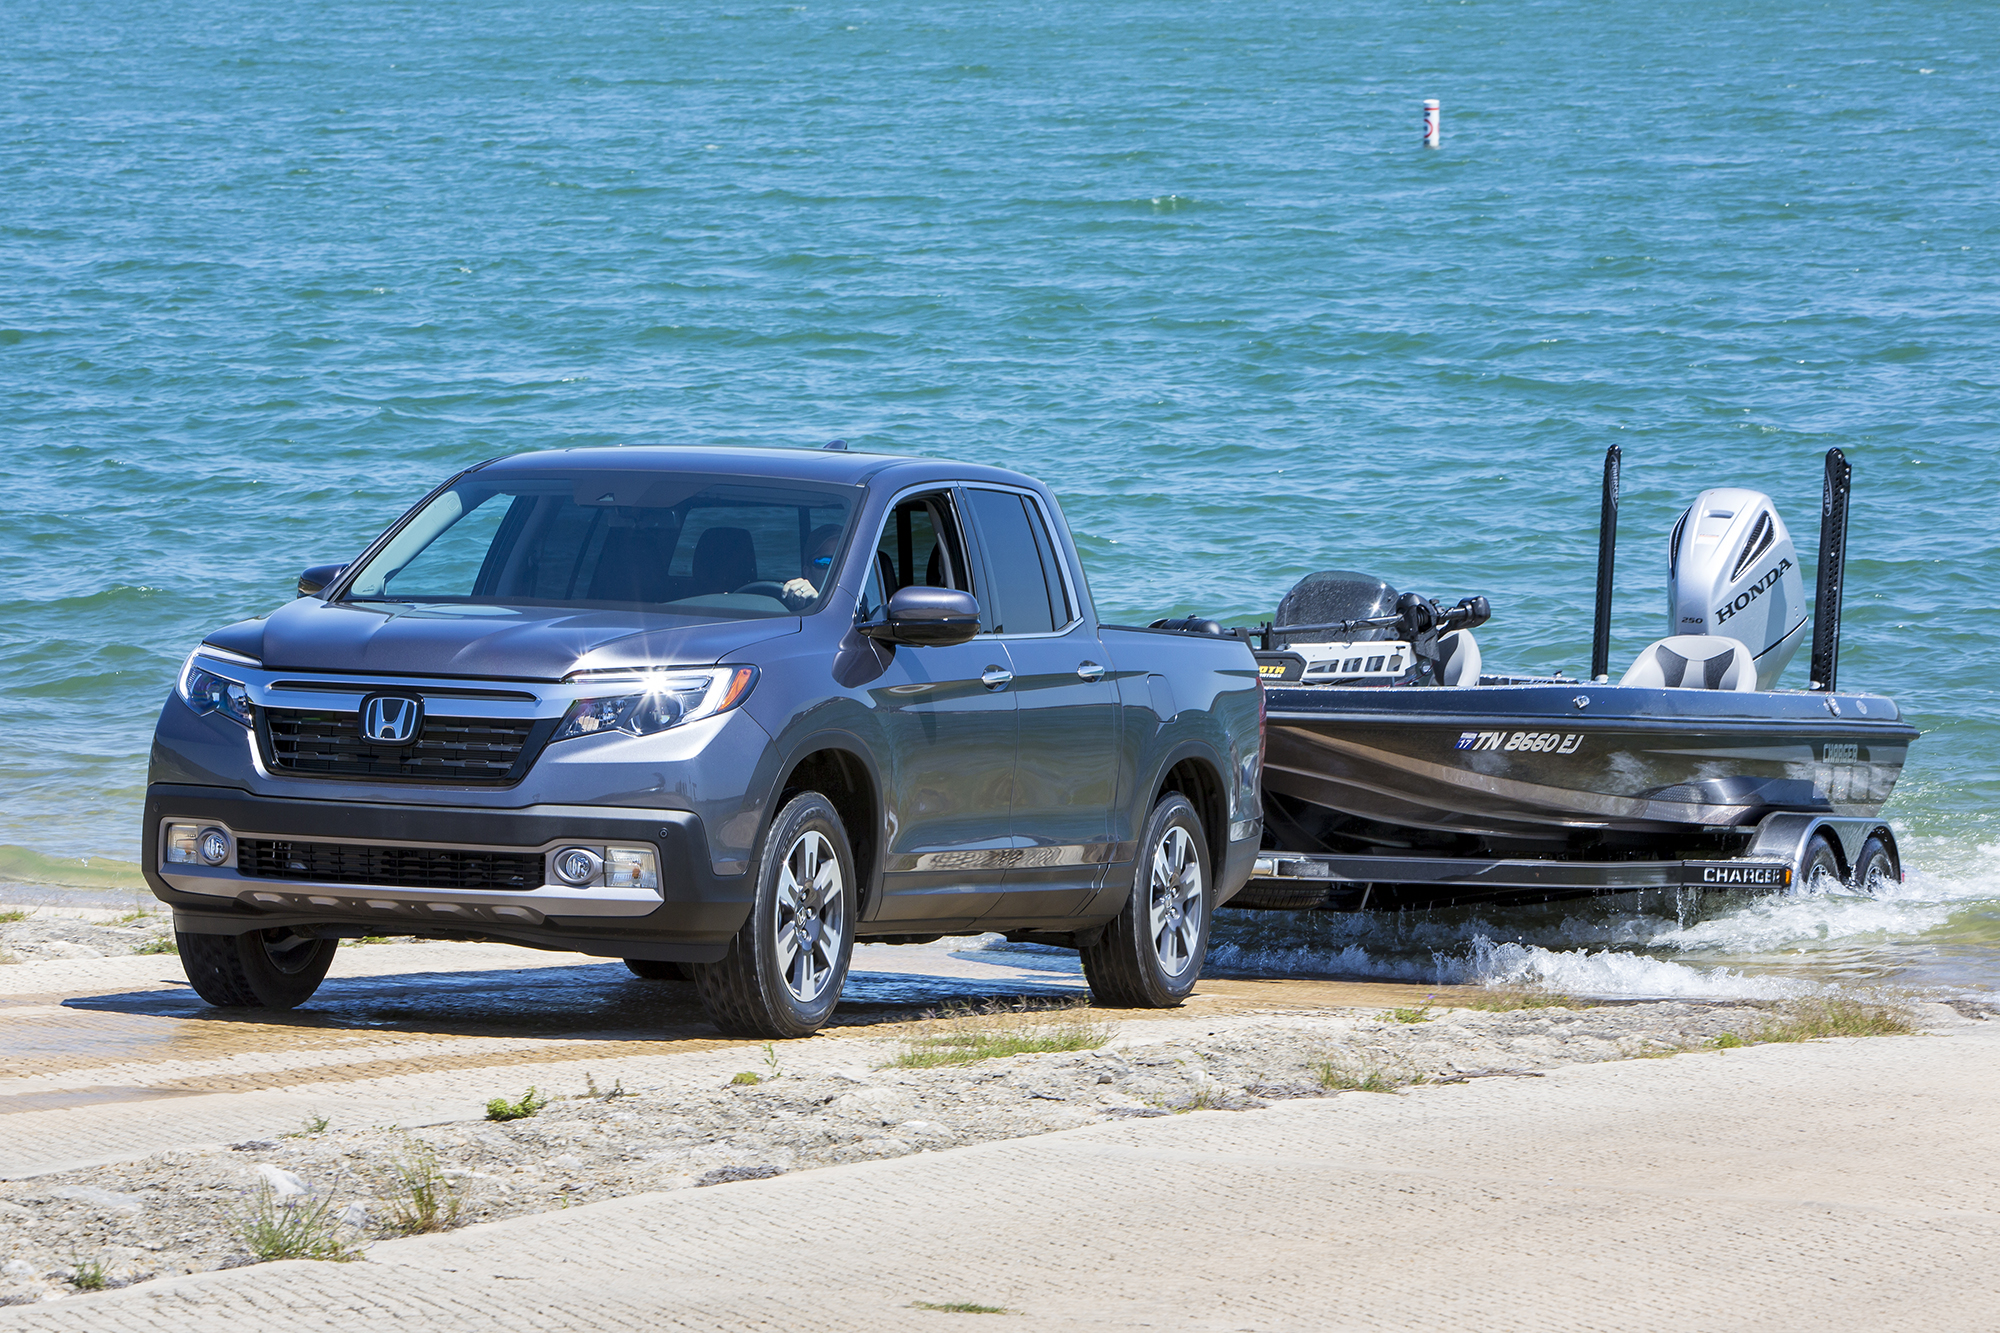 All the Pickup Truck News: 2020 Honda Ridgeline Revised, Ford Super Duty Recall and More